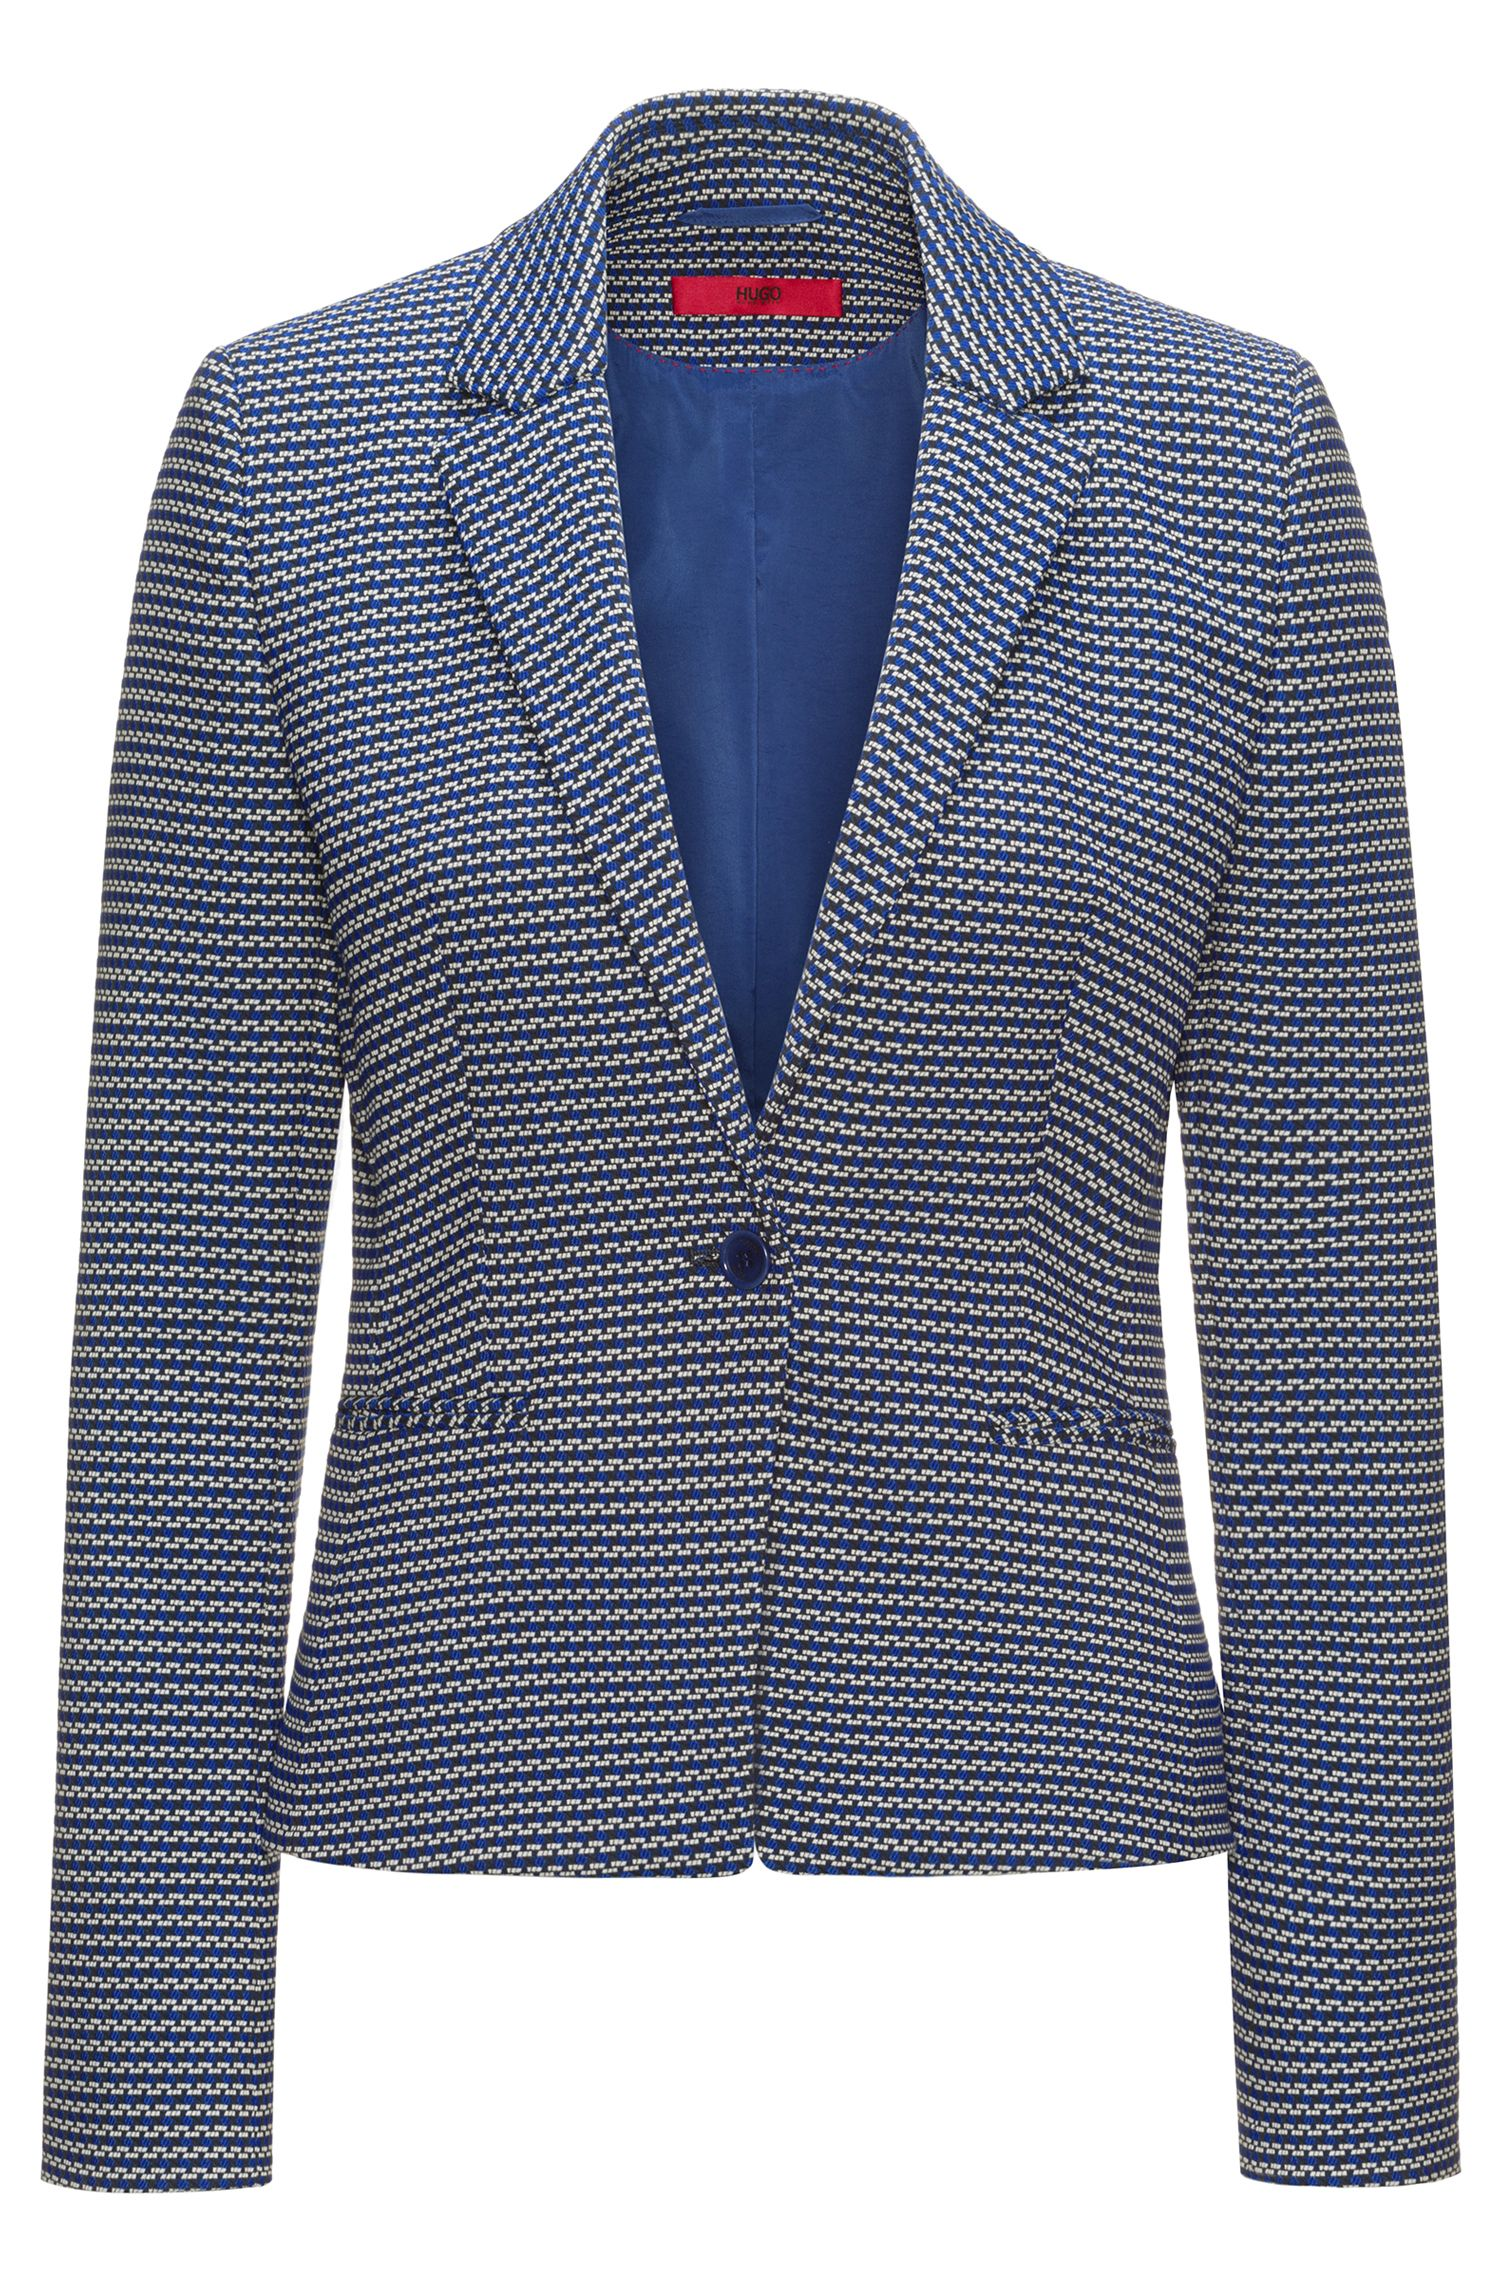 Slim-fit jacket in cotton-blend graphic jacquard